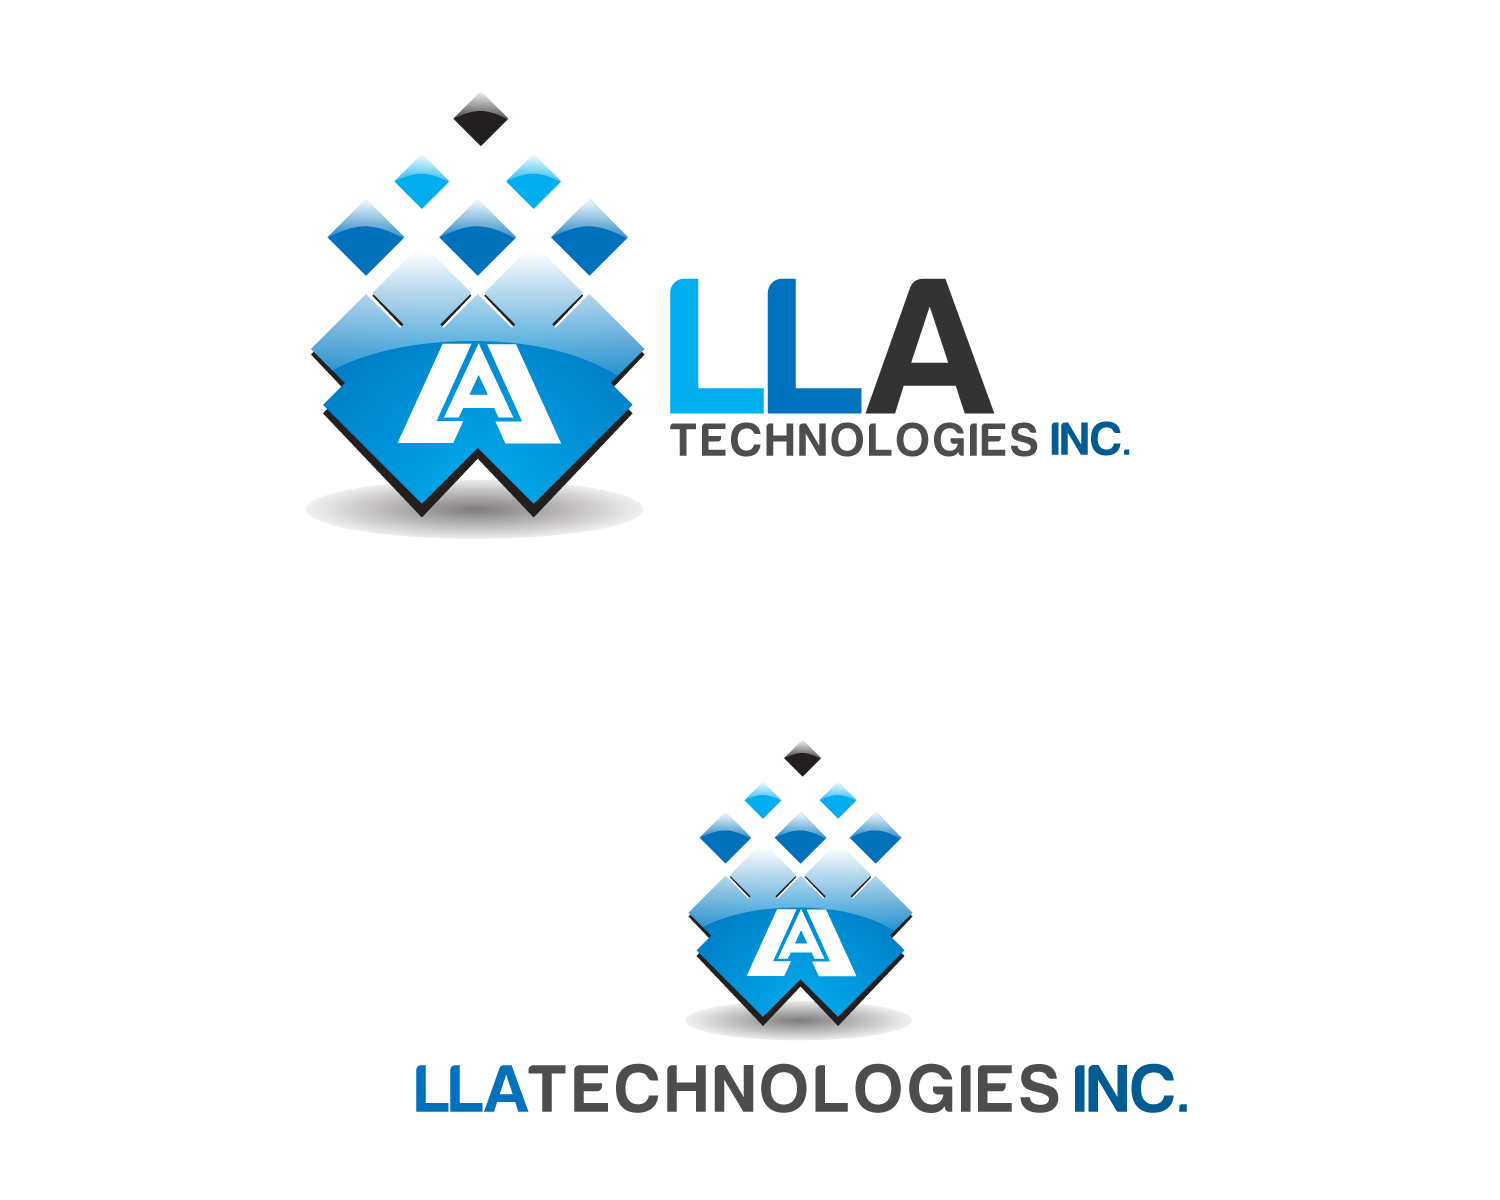 Logo Design by Jagdeep Singh - Entry No. 115 in the Logo Design Contest Inspiring Logo Design for LLA Technologies Inc..